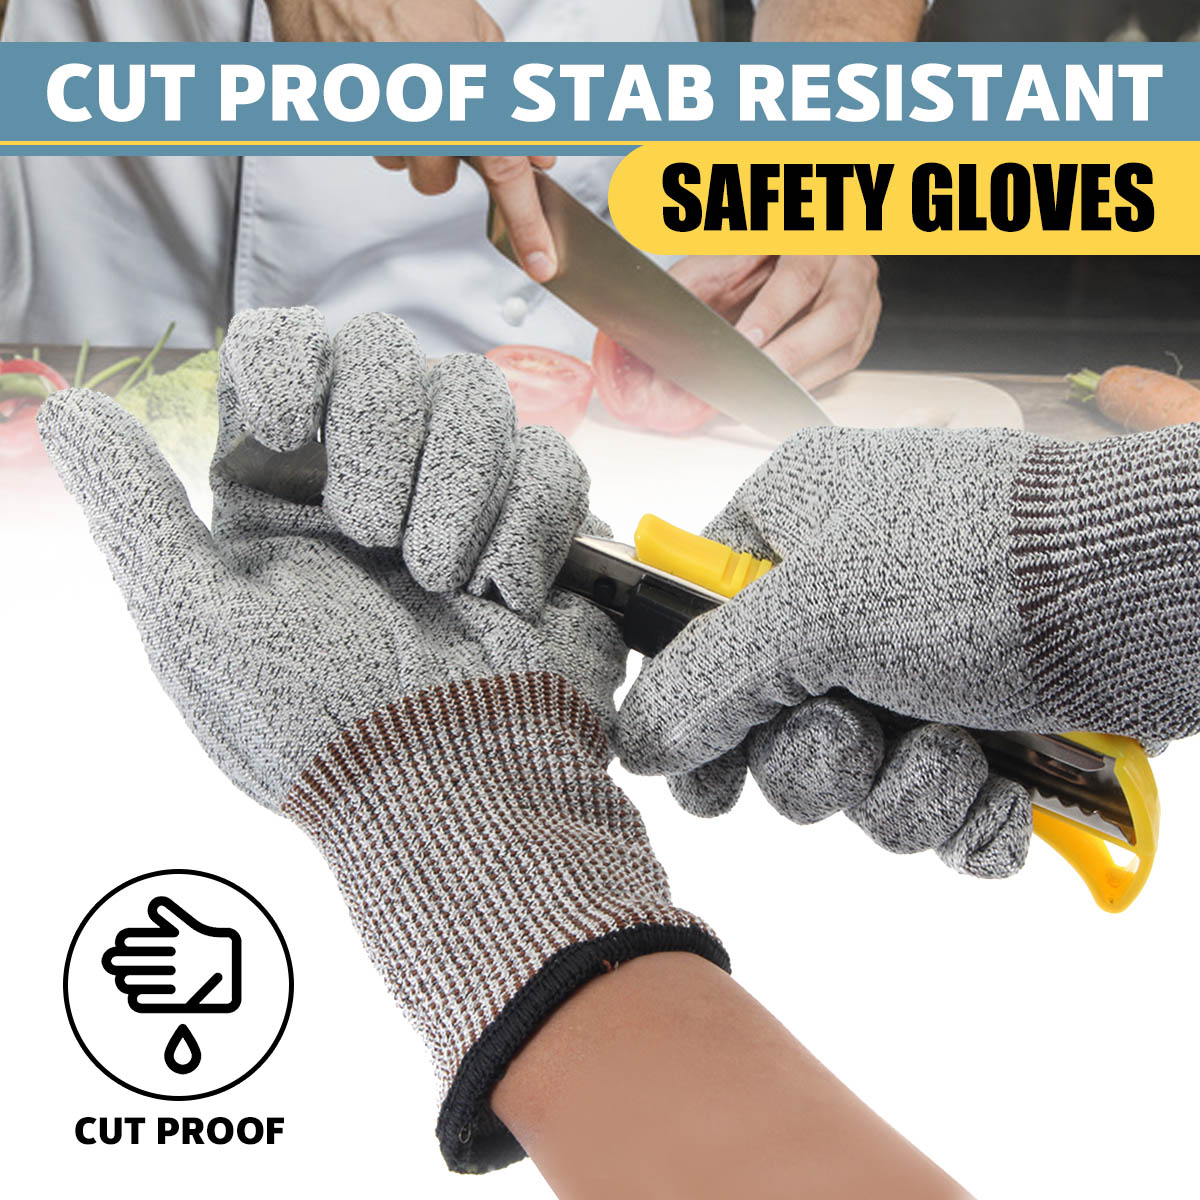 Butcher-Gloves Wire Cut-Proof Safety Stab-Resistant Stainless-Steel Metal Mesh